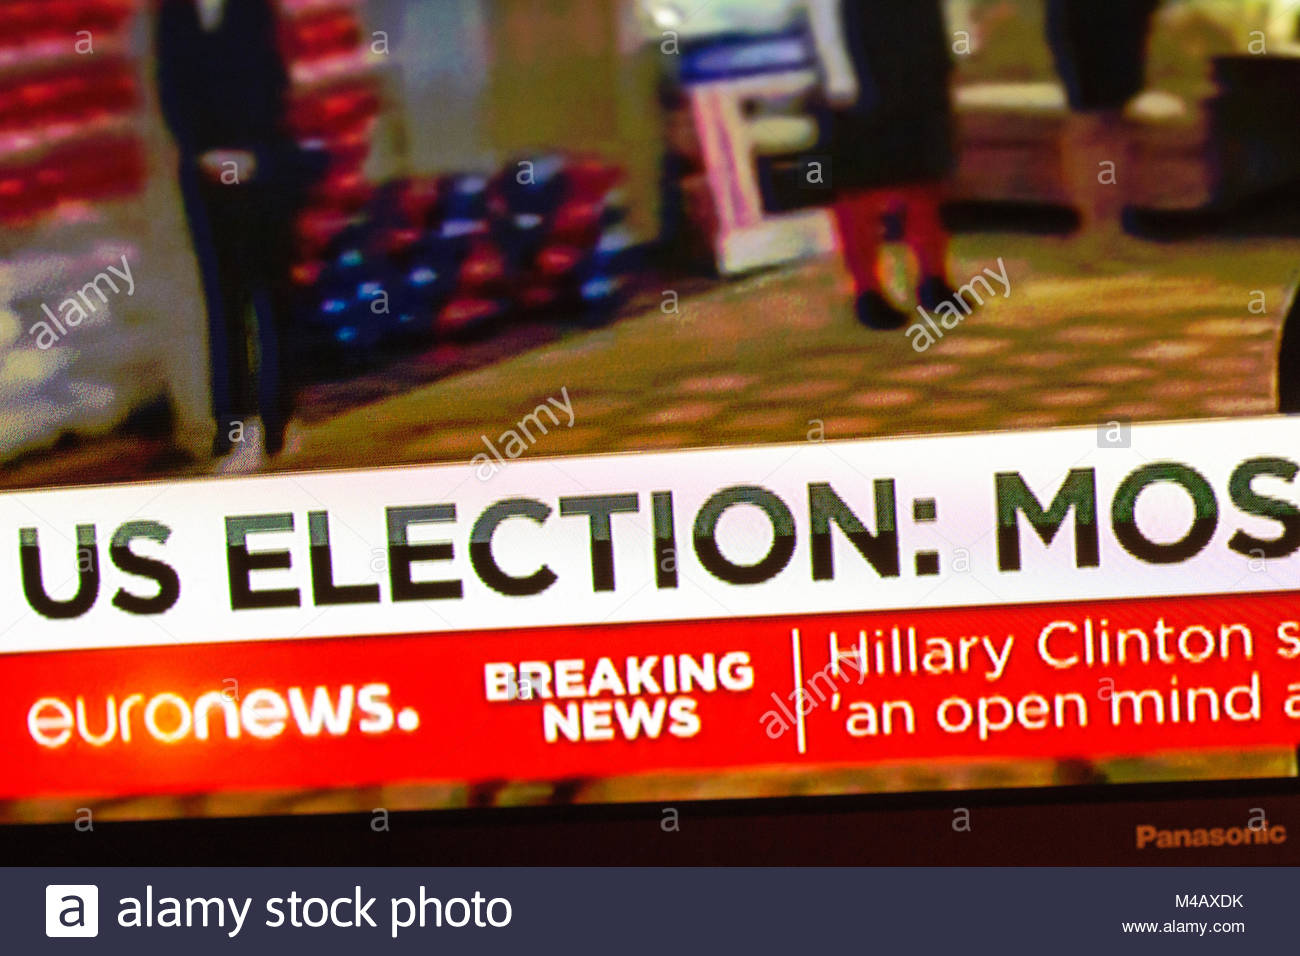 Breaking news US elections signs on Euronews TV Stock Photo